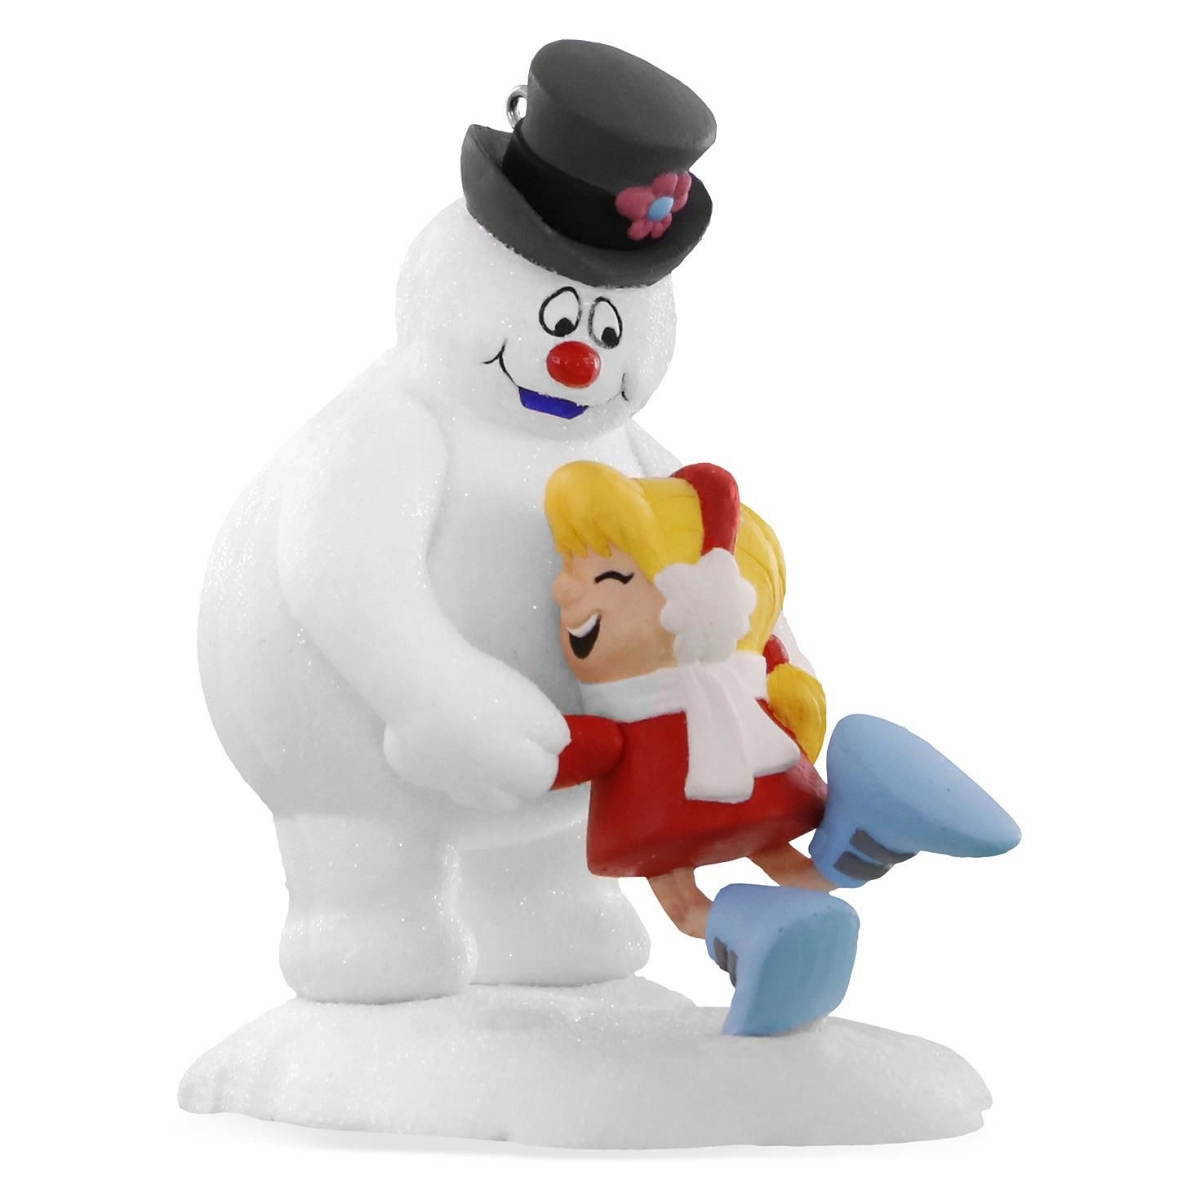 2016 warm frosty hug hallmark keepsake ornament